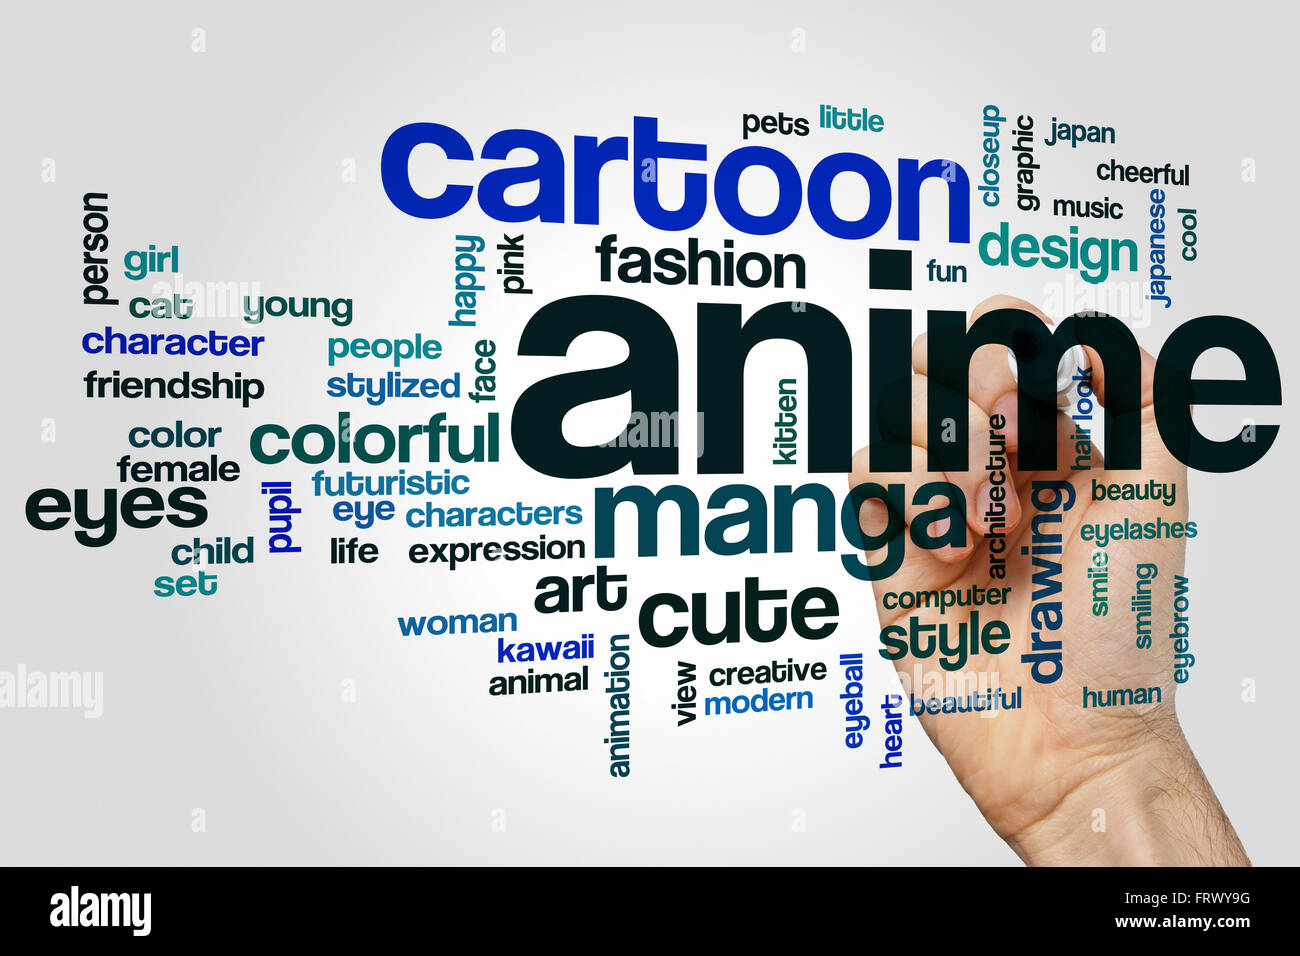 Anime word cloud concept with cartoon manga related tags